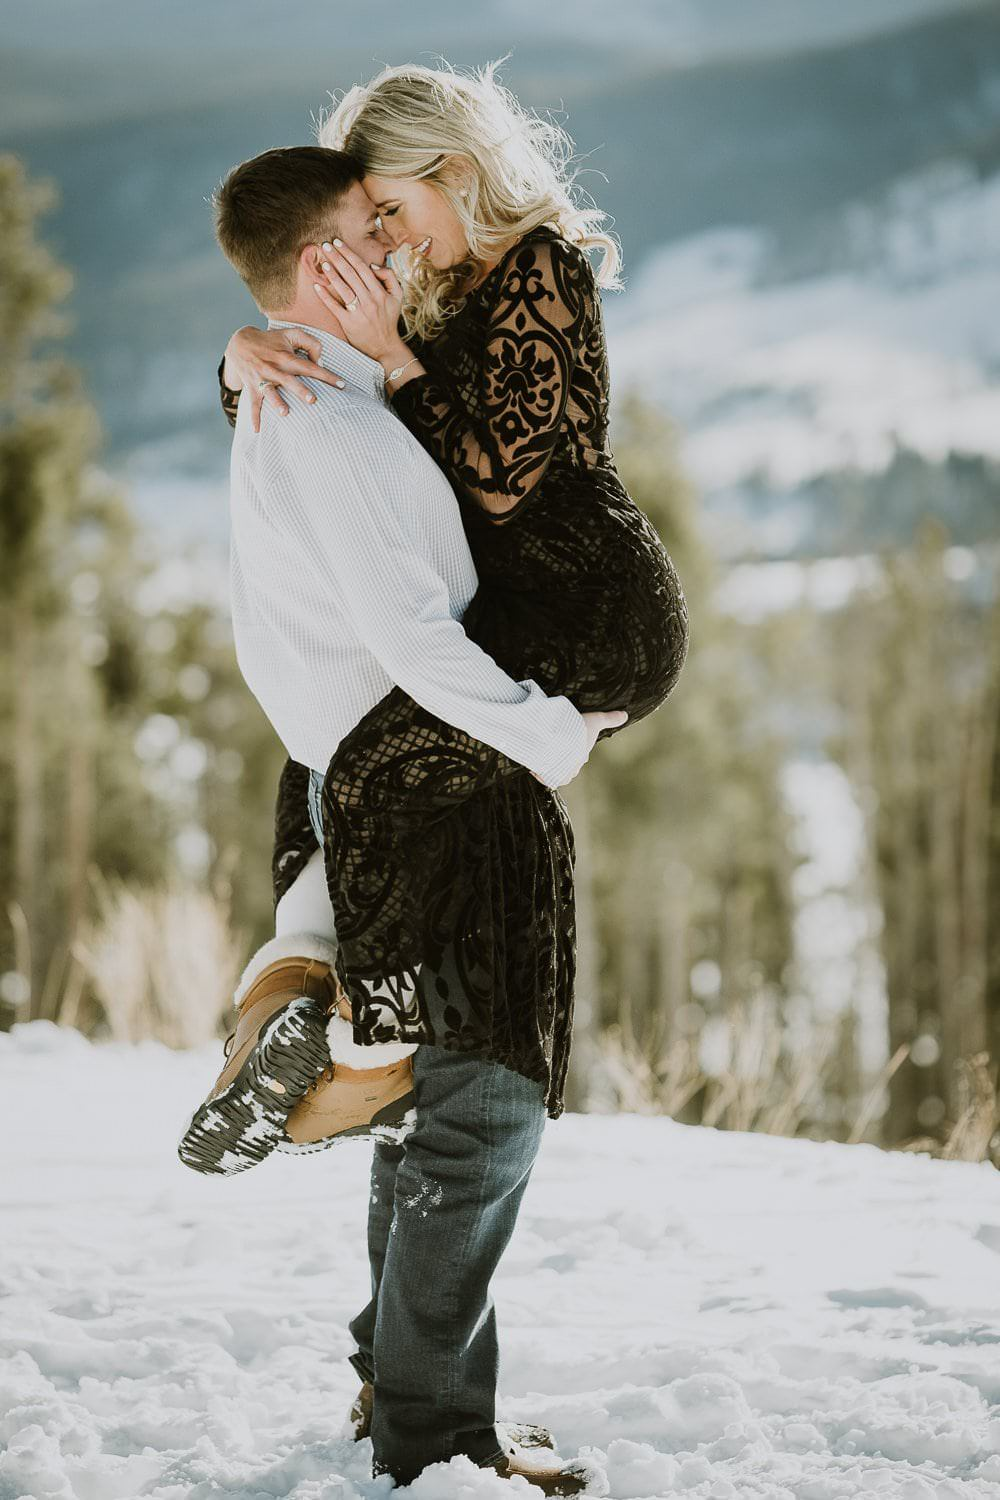 INTIMATE WINTER MOUNTAIN ELOPEMENT IN THE ROCKIES| LOVELAND PASS ELOPEMENT | CONTINENTAL DIVIDE ELOPEMENT|COLORADO MOUNTAIN ELOPEMENT PHOTOGRAPHY | ROCKY MOUNTAIN ELOPEMENT |BRECKENRIDGE COLORADO ELOPEMENT|SAPPHIRE POINT OUTLOOK ELOPEMENT |CASEY + LARRY